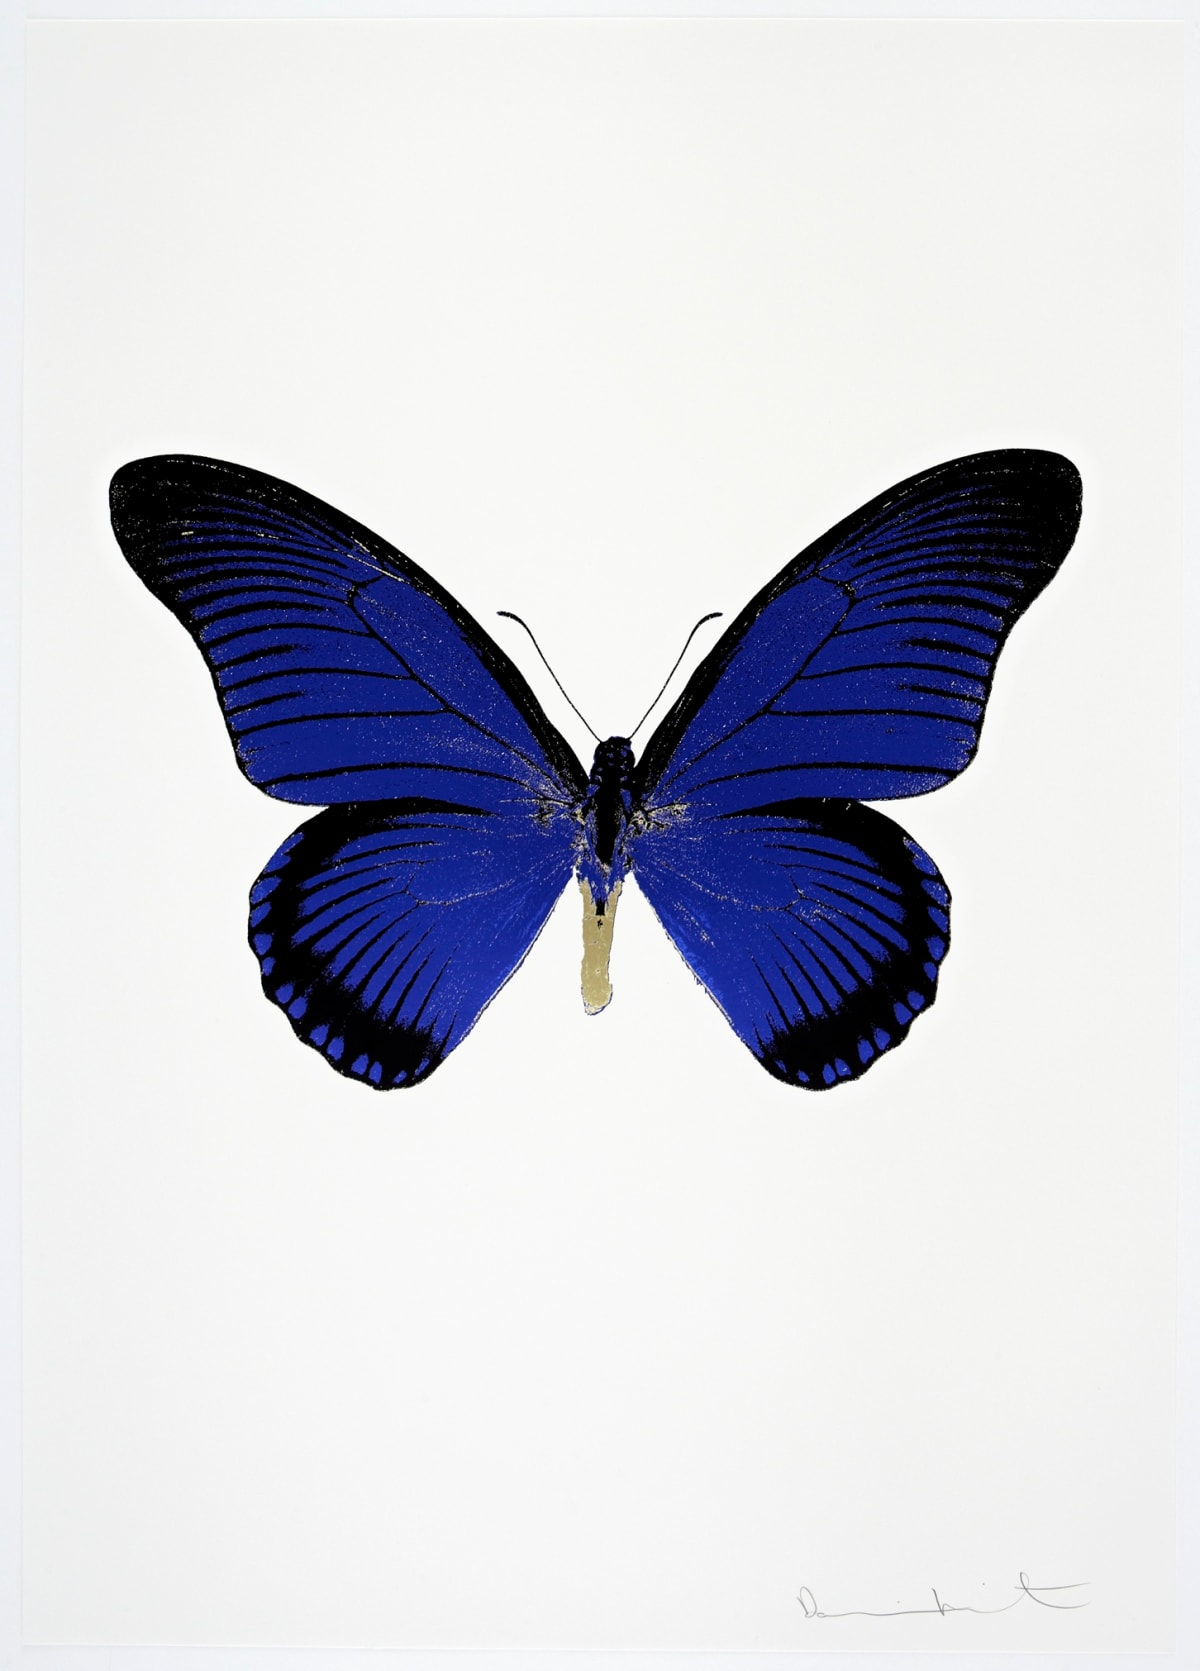 Damien Hirst The Souls IV - Westminster Blue/Raven Black/Cool Gold Damien Hirst butterfly foil print for sale Damien Hirst print for sale , 2010 3 colour foil block on 300gsm Arches 88 archival paper. Signed and numbered. Published by Paul Stolper and Other Criteria 72 x 51cm OC8044 / 1418-67 Edition of 15